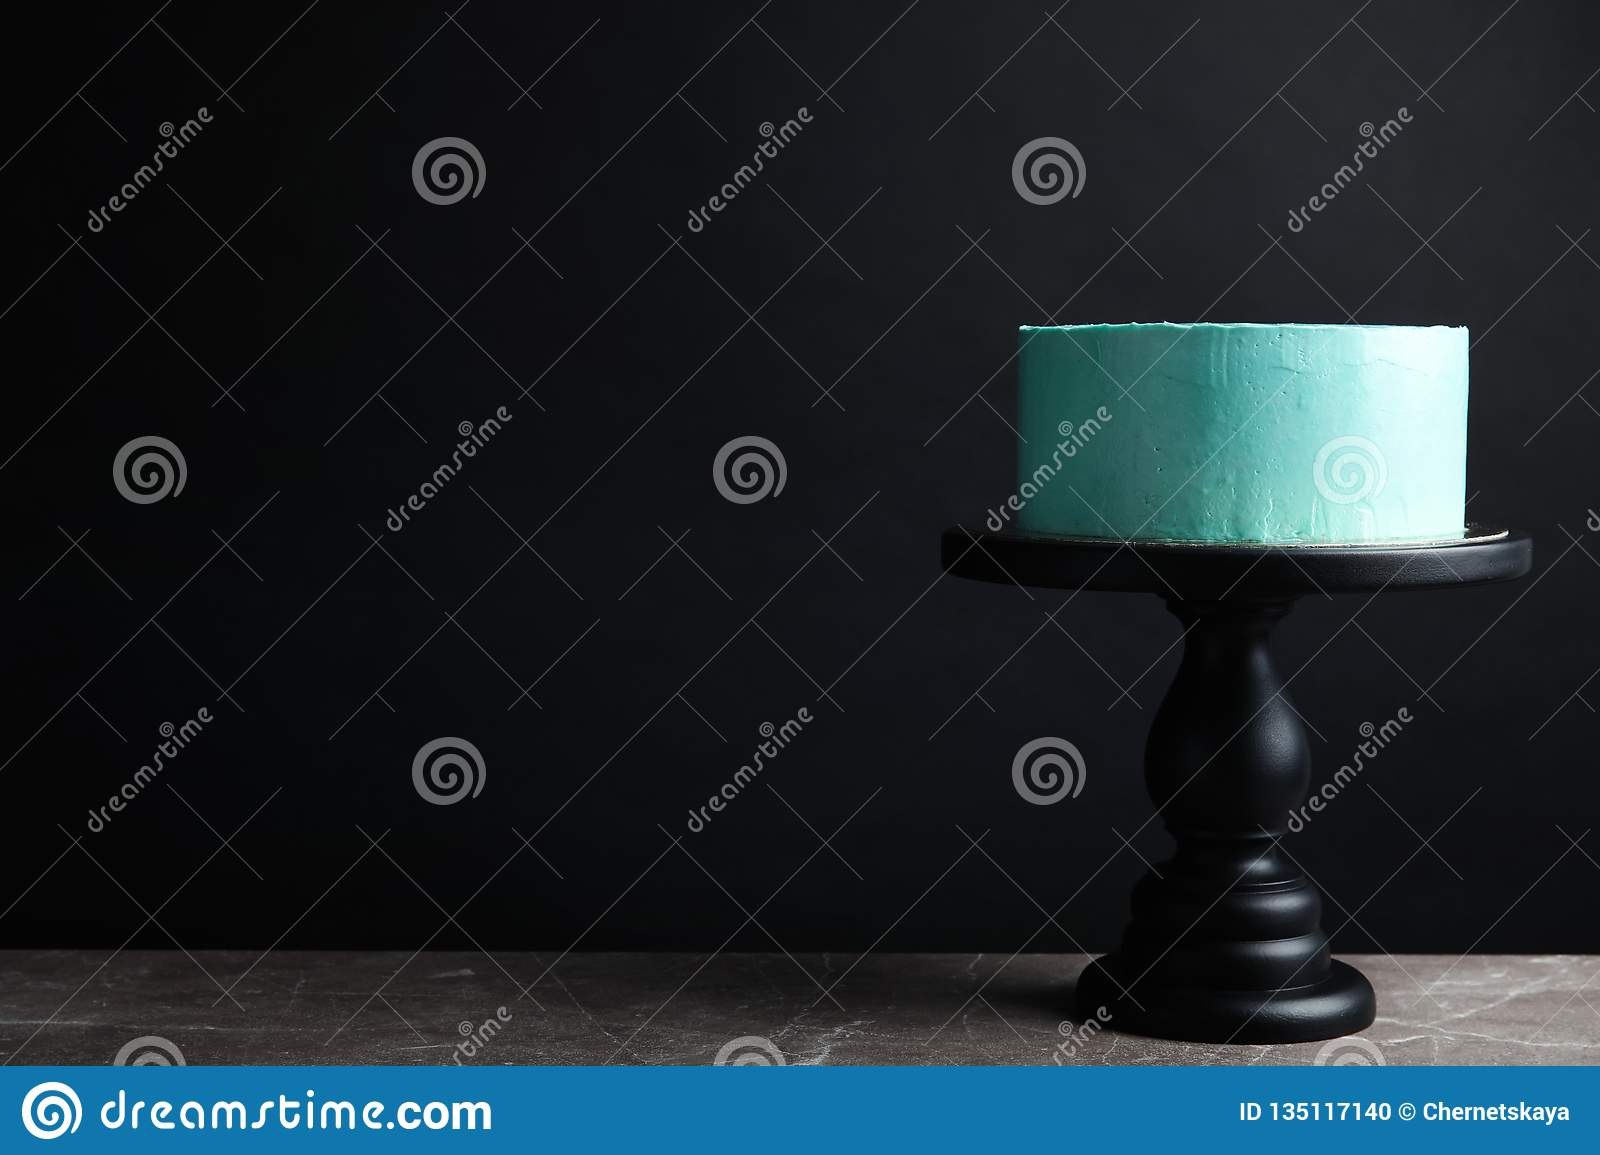 Fresh delicious birthday cake on stand against black background.